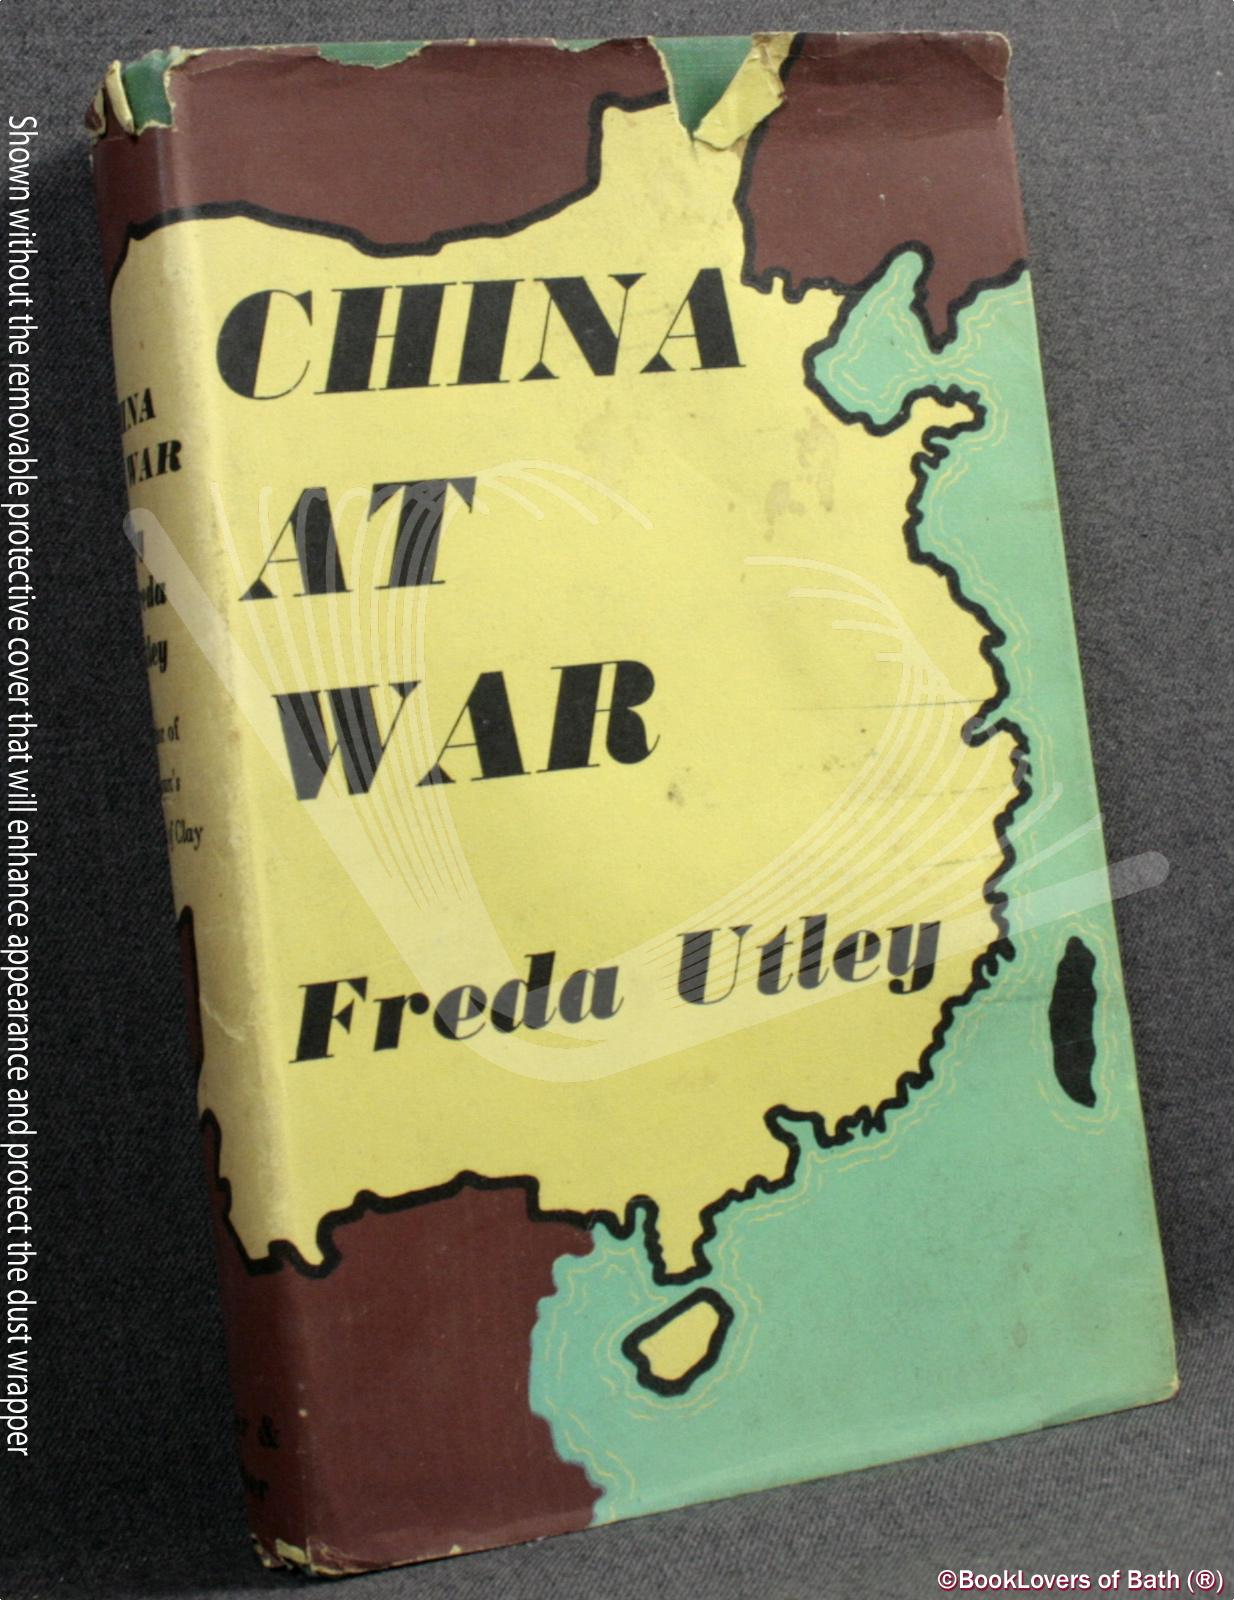 China At War - Freda Utley